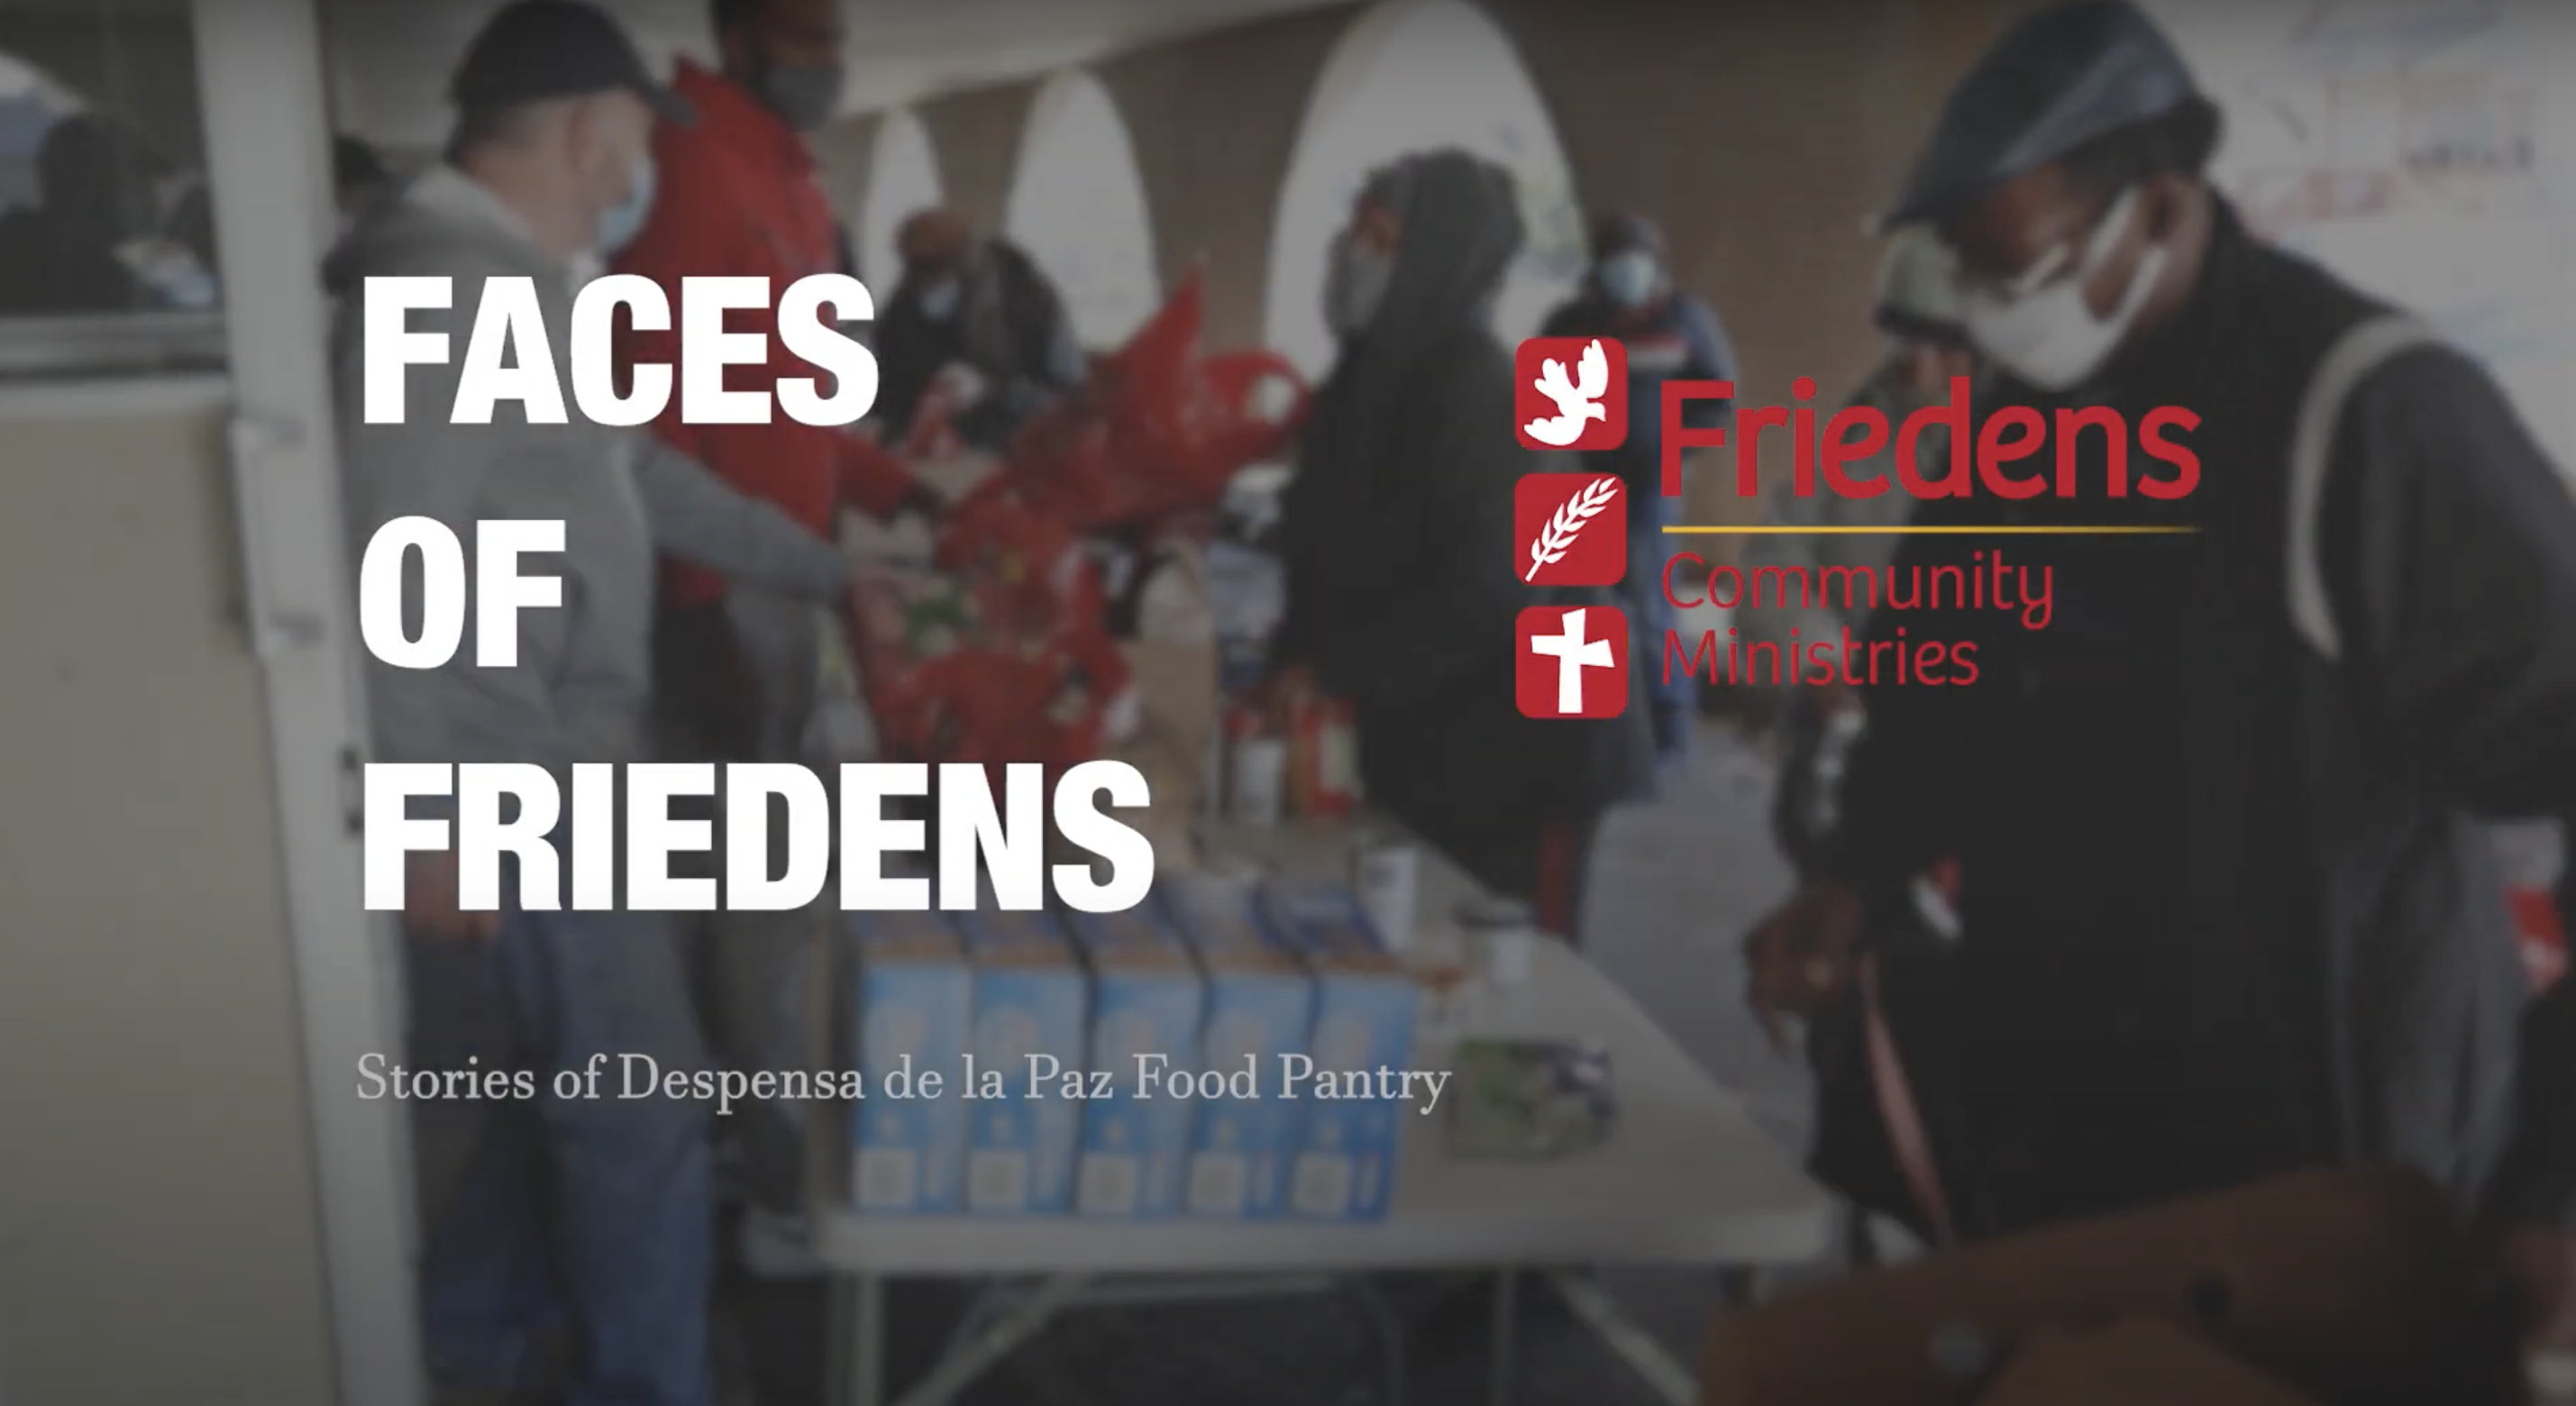 Faces of Friedens: Meeting Needs and Making Impacts